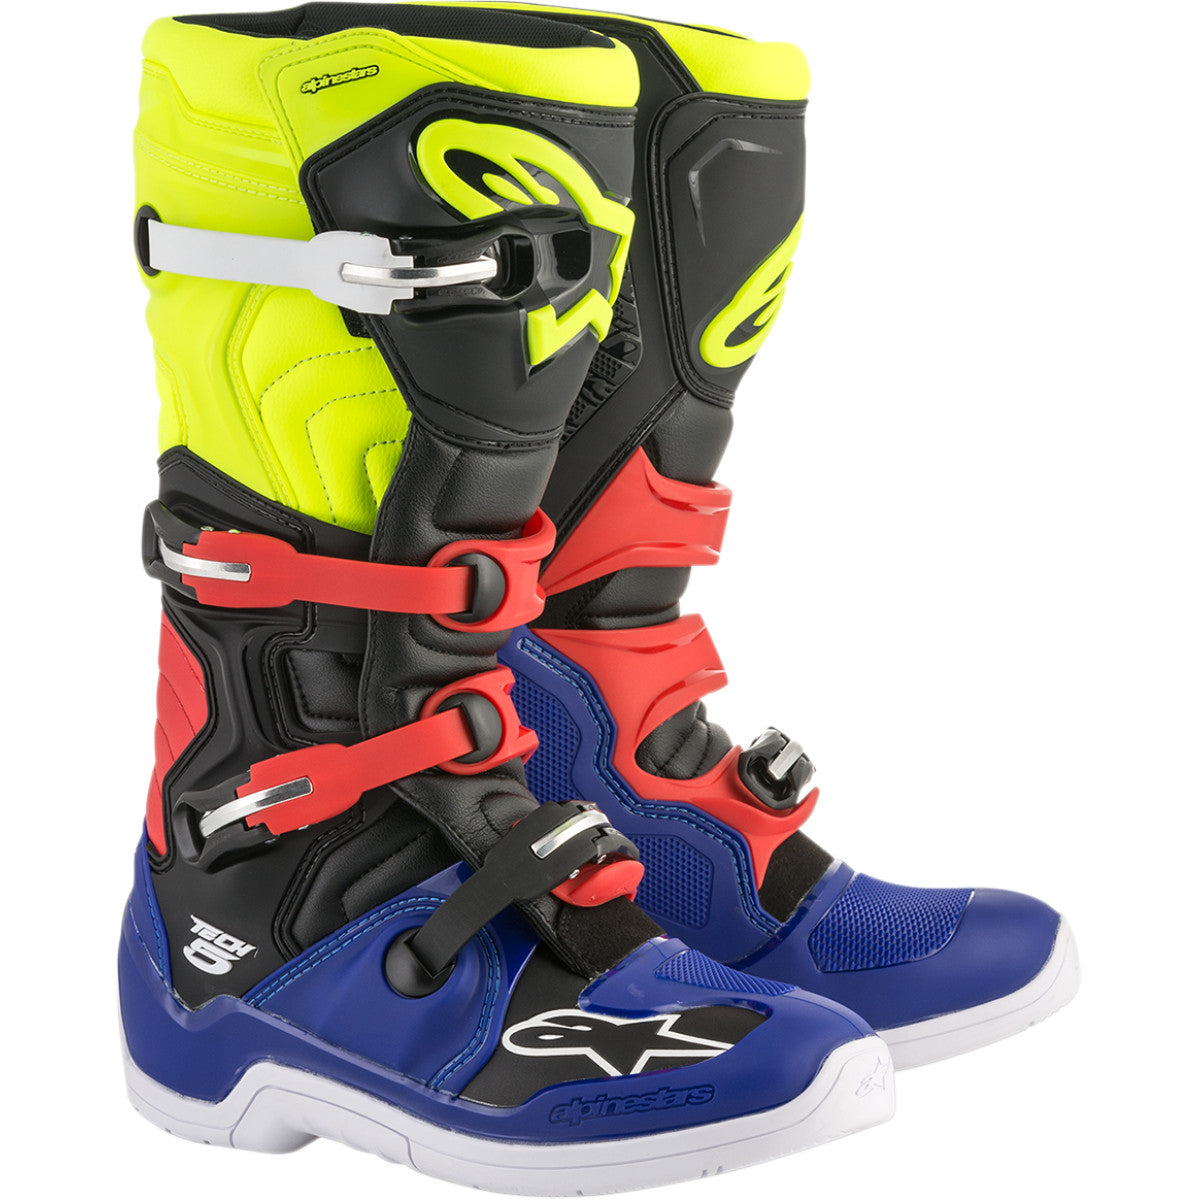 Alpinestars(MX) Tech 5 Boots